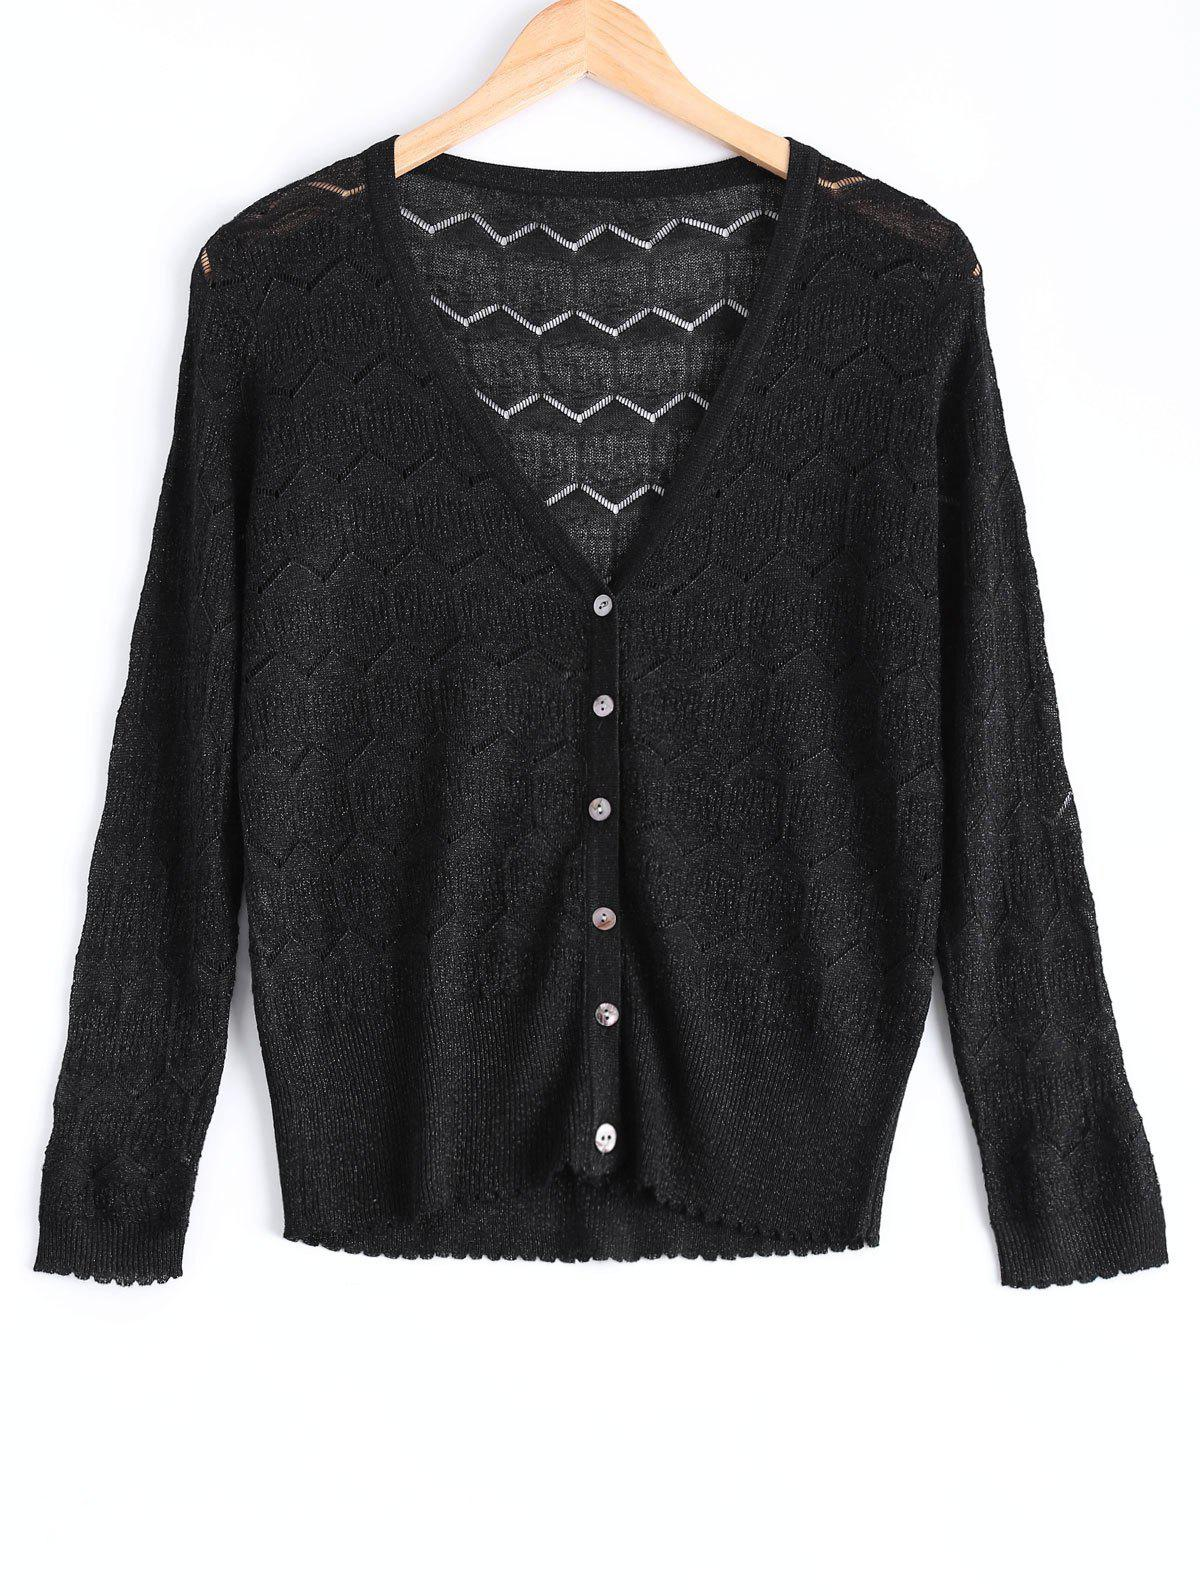 Casual Zig Zag Textured Knitted Cardigan For Women